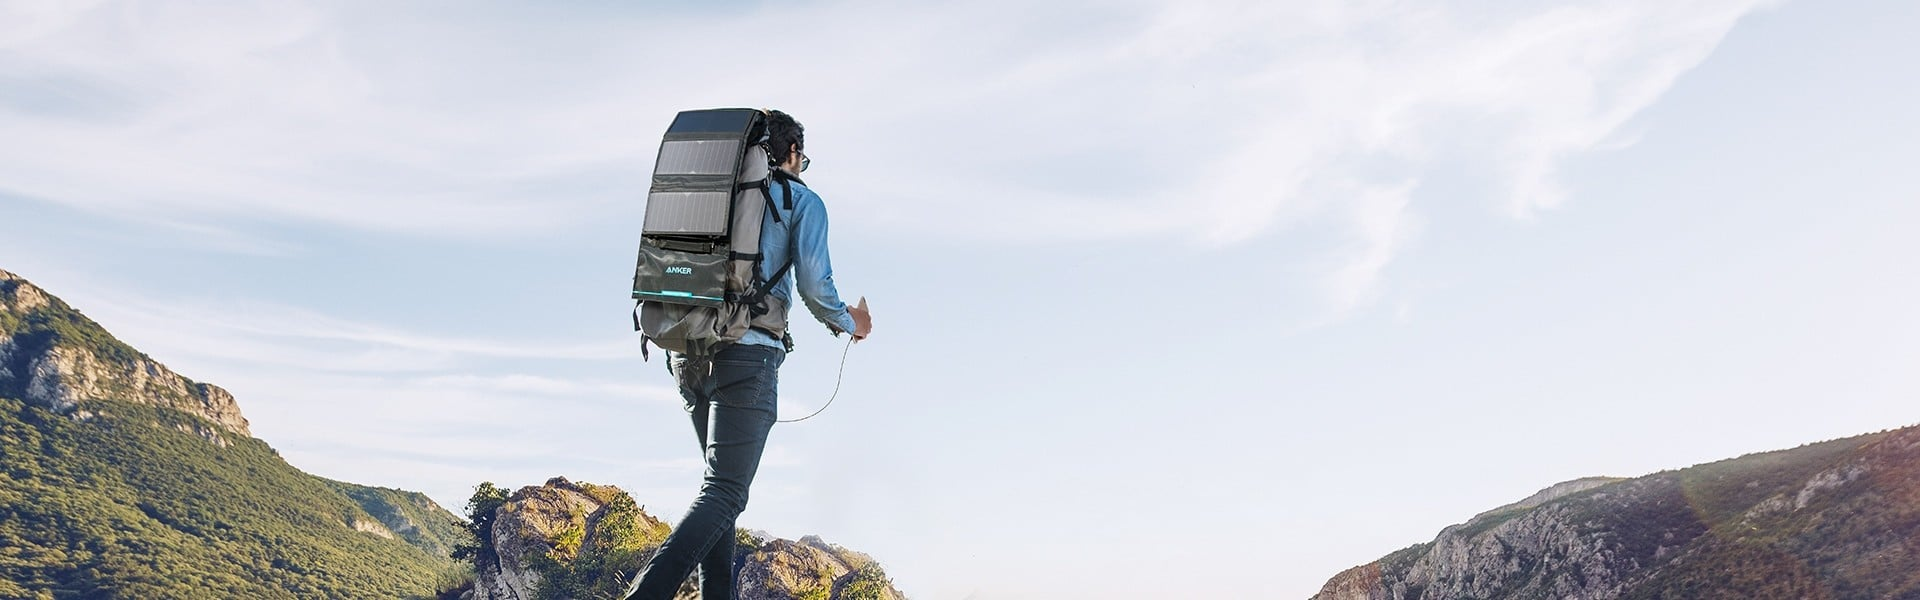 The Best Portable Solar Chargers For Backpacking & Camping: In-Depth Guide To Foldable Solar Phone Chargers